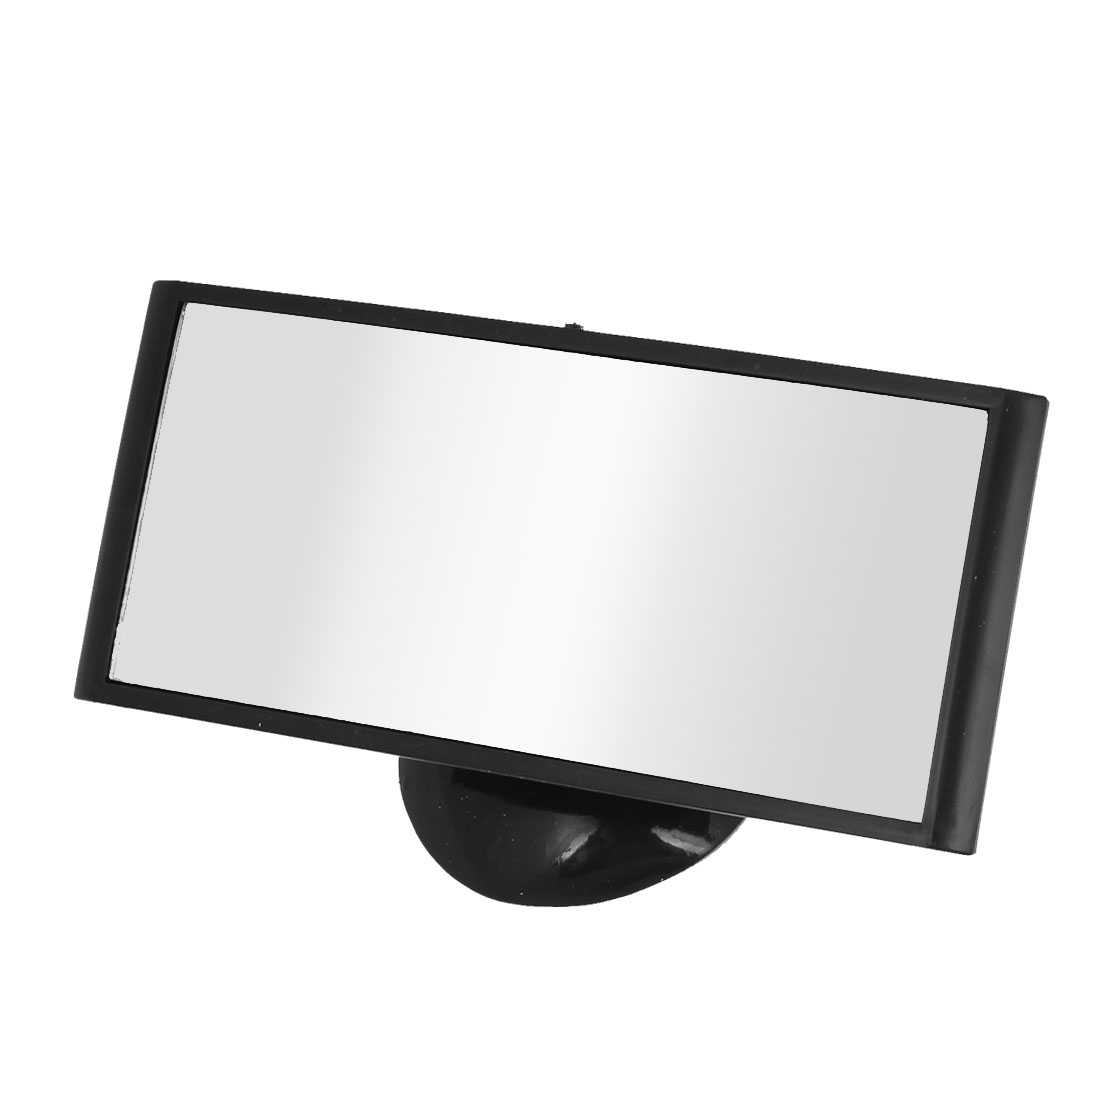 Car Suction Cup Adjustable Rectangle Blind Spot Parking Rearview Mirror Black